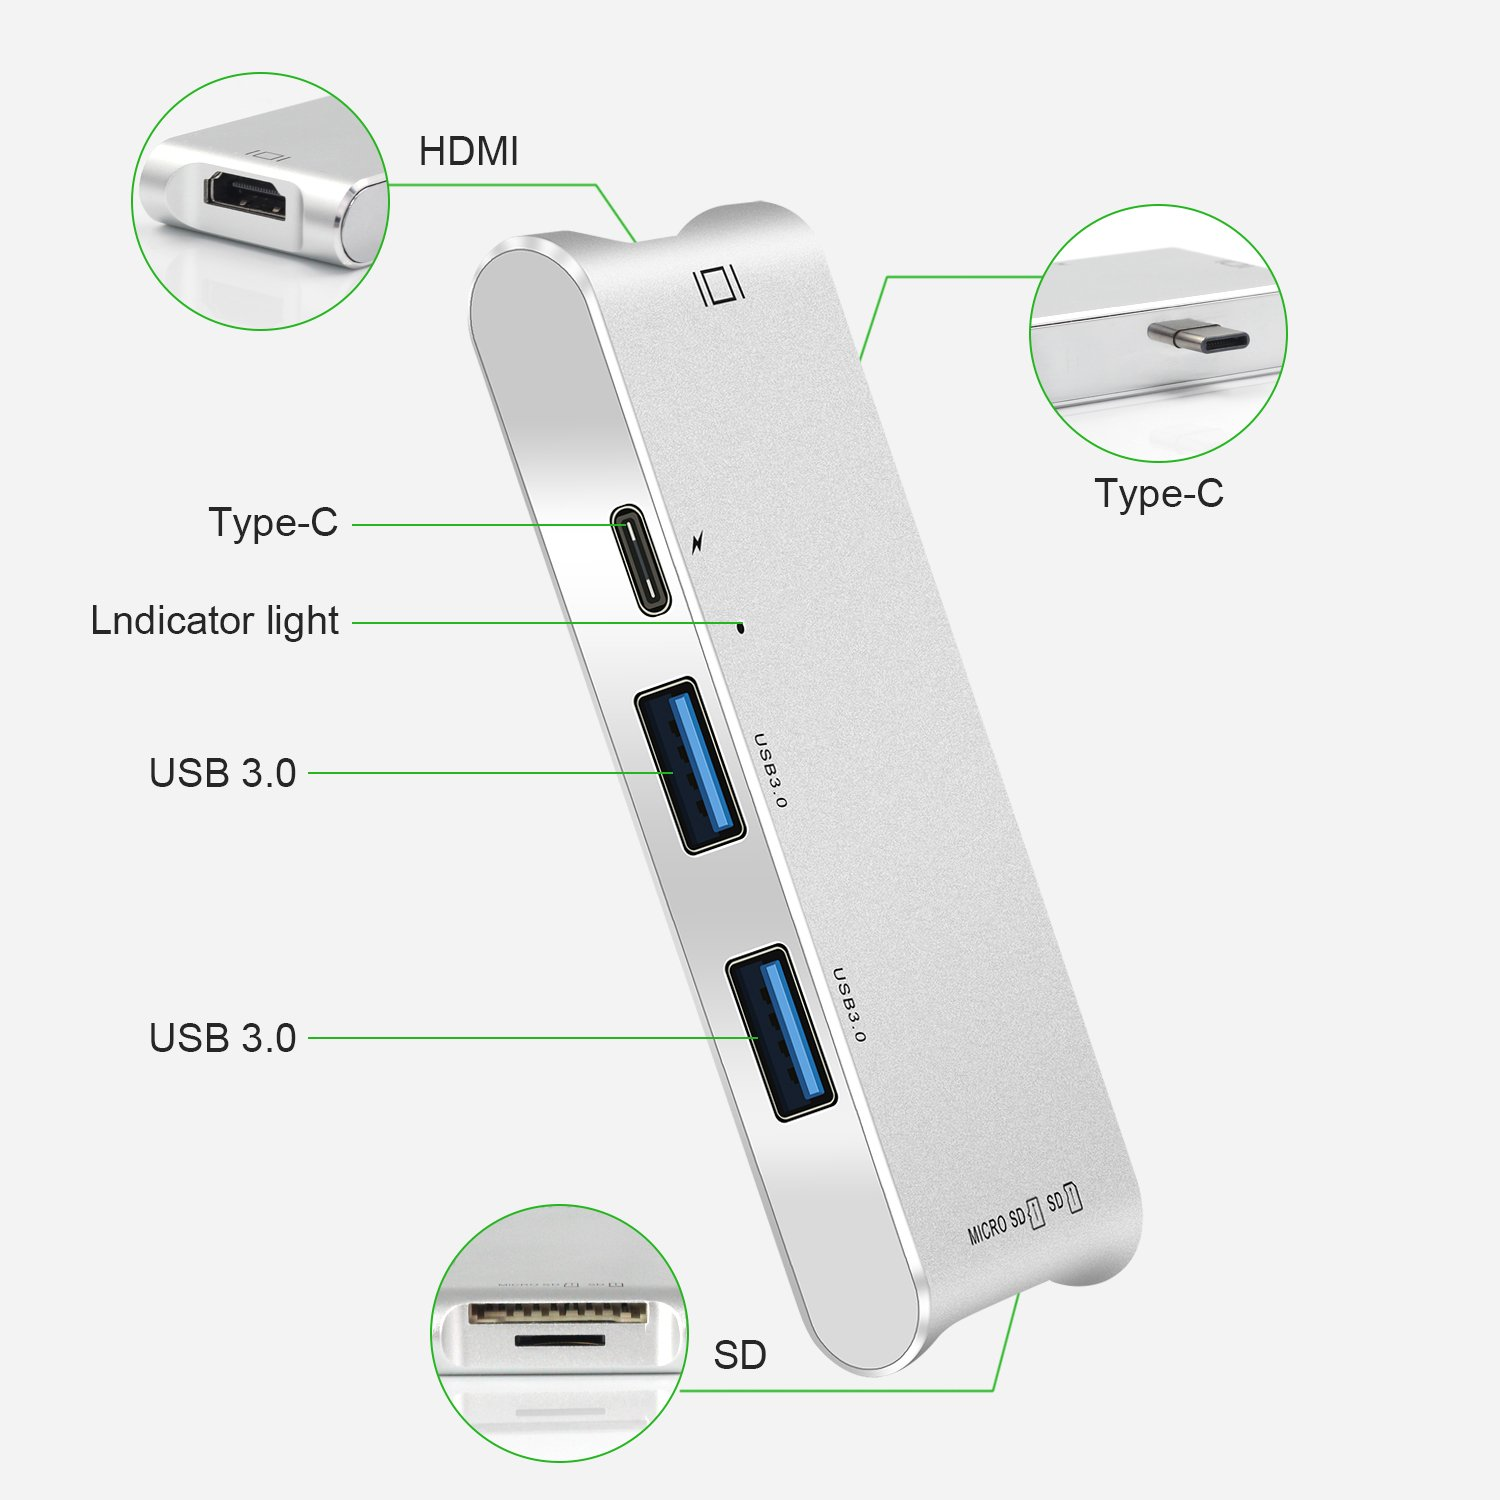 USB Type-C Hub, LUCKYDIY USB-C Adapter with HDMI 4K+2-Port USB 3.0+Power Delivery+Card Reader for MacBook Pro 2016/2017/Google Chromebook/More Type-C Devices by LUCKYDIY (Image #3)